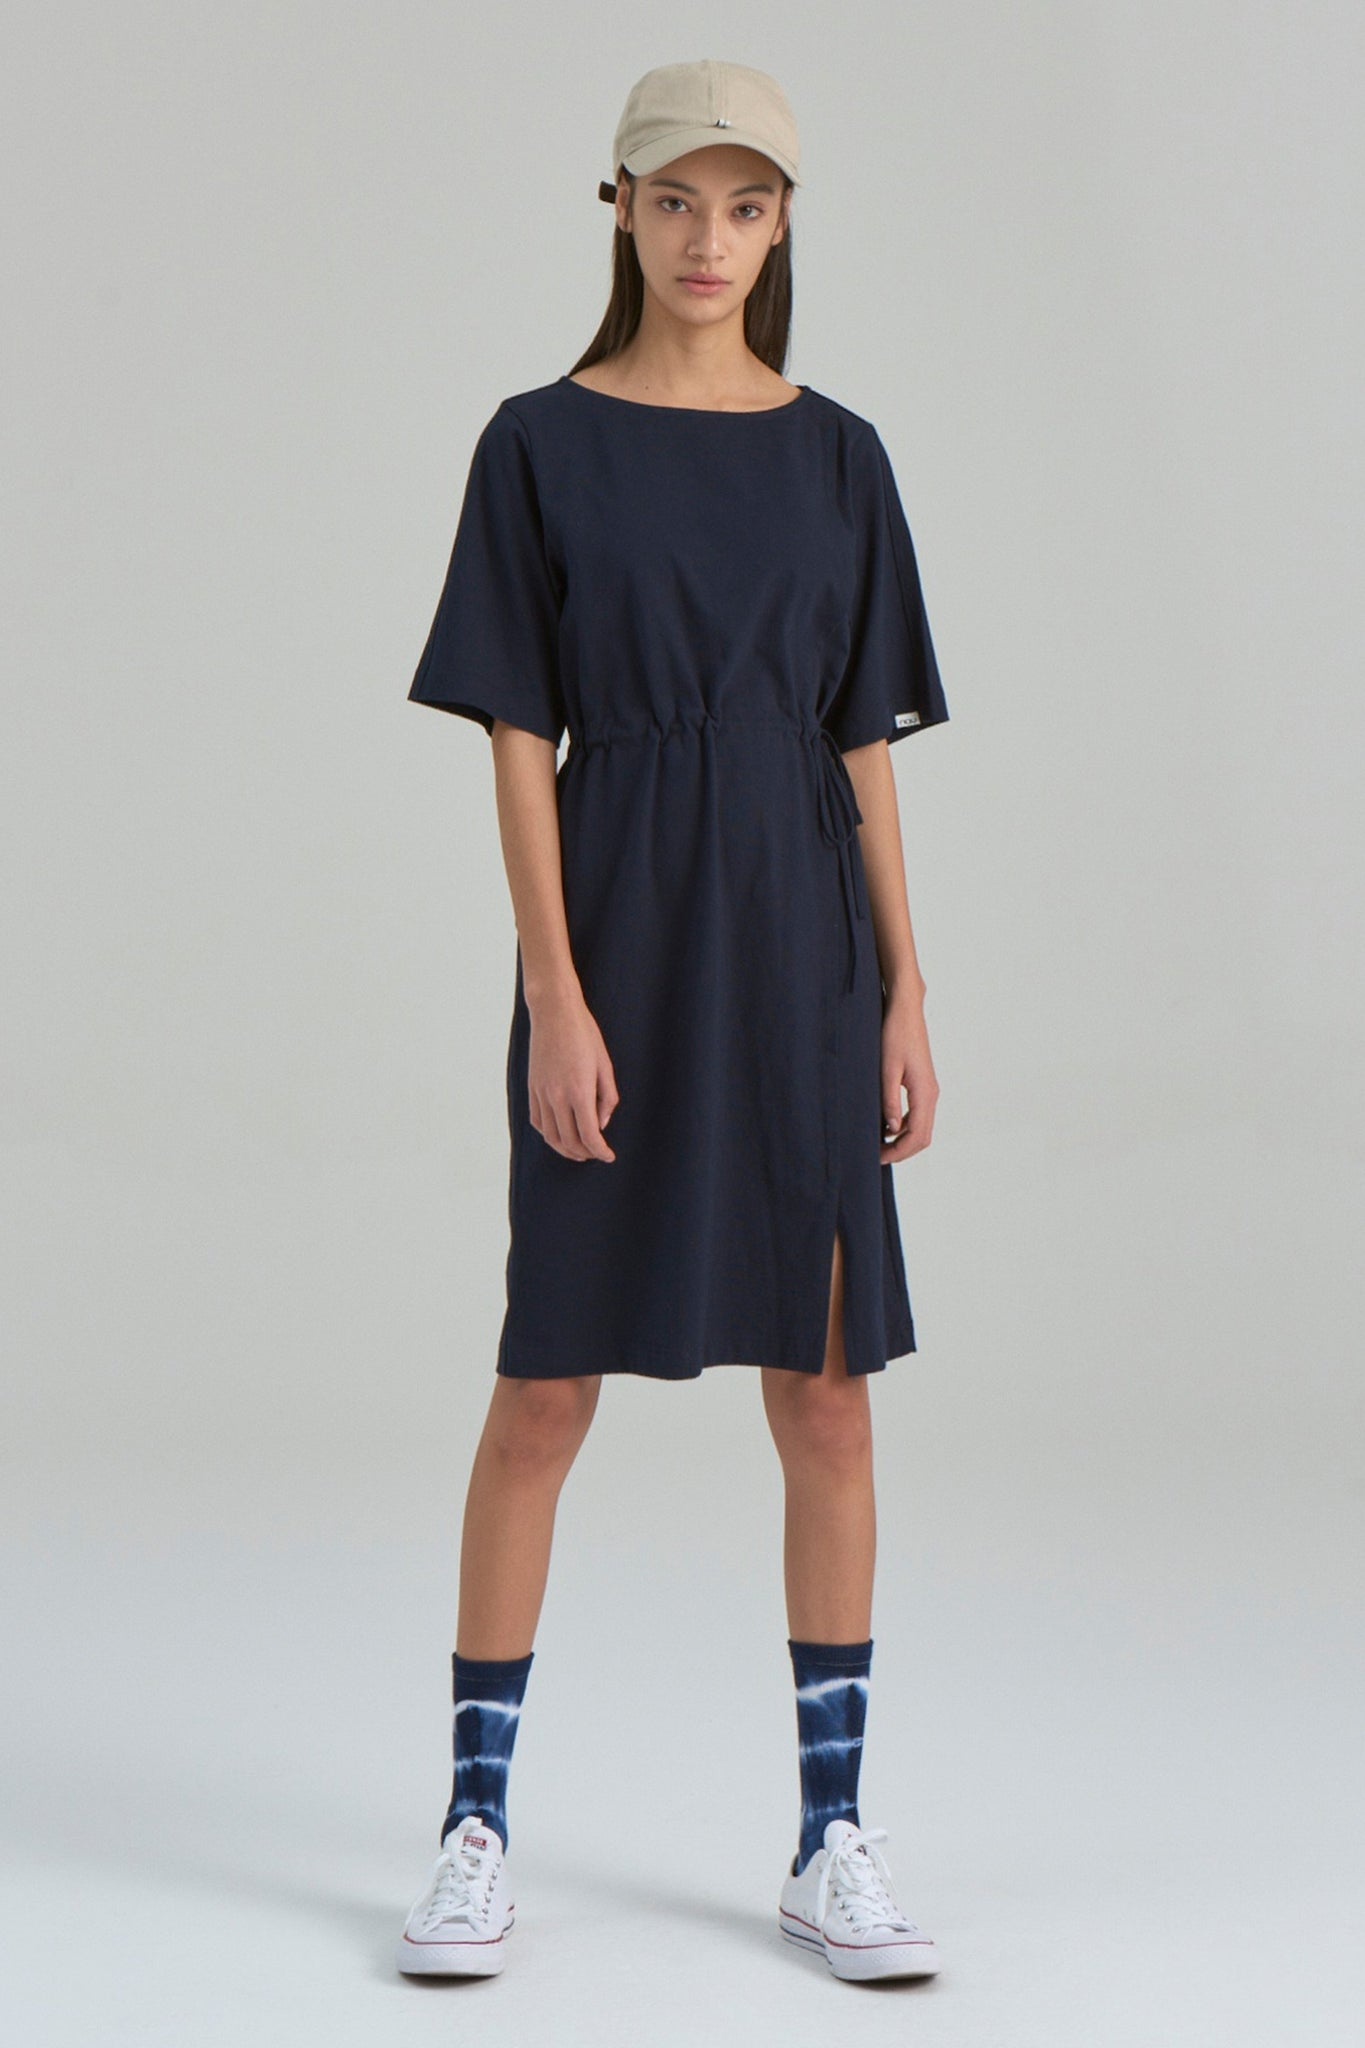 Huxley Dress